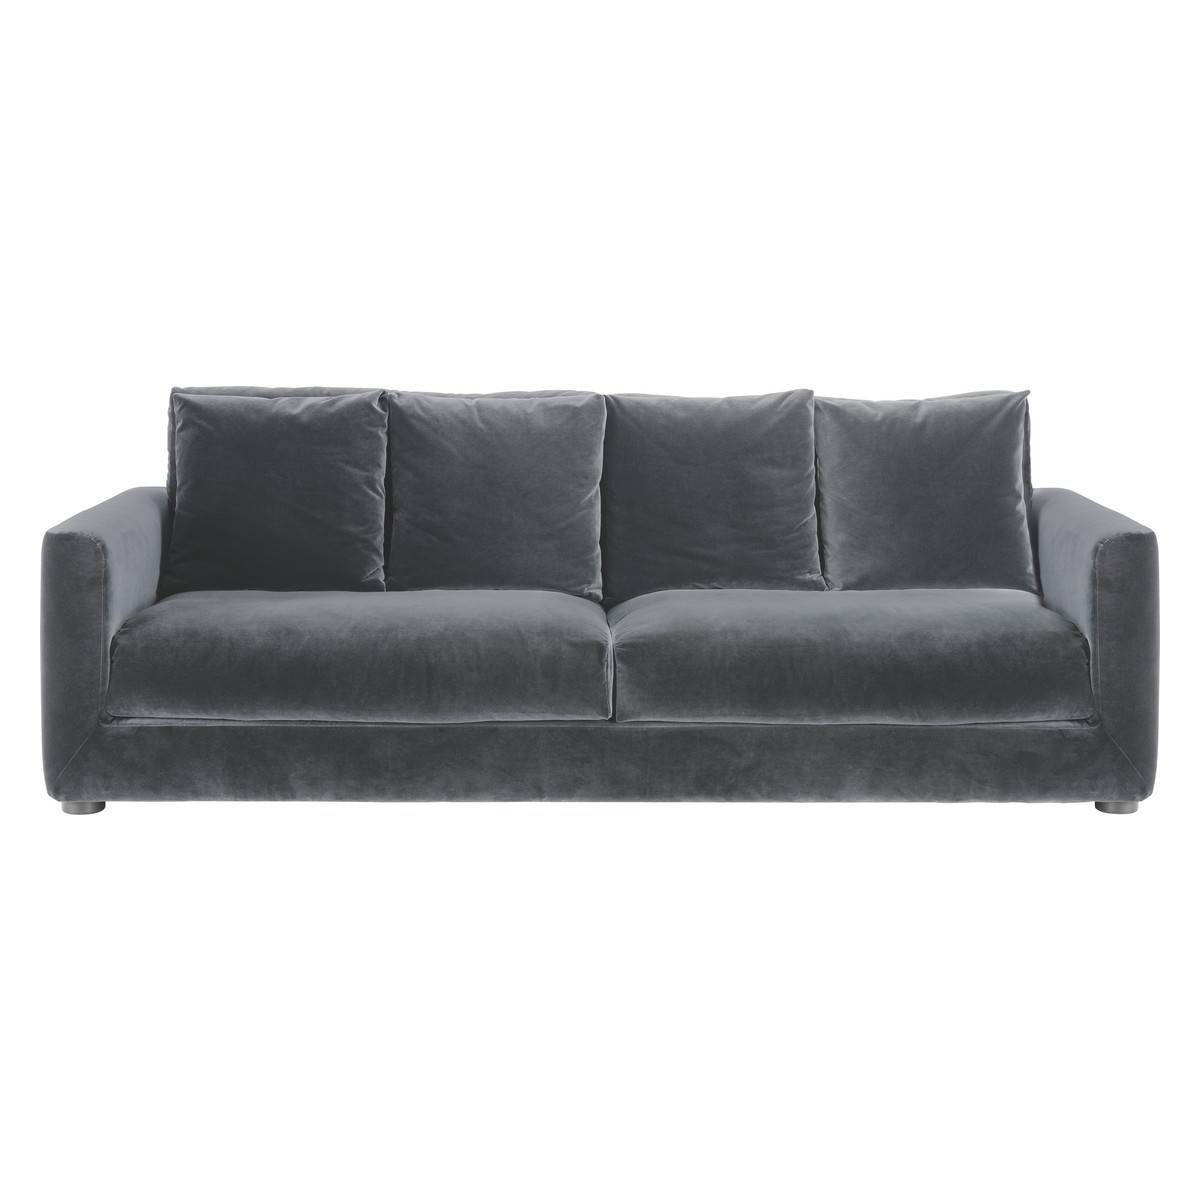 Furniture: Best Quality Grey Velvet Sofa For Your Living Room within Small Grey Sofas (Image 5 of 15)